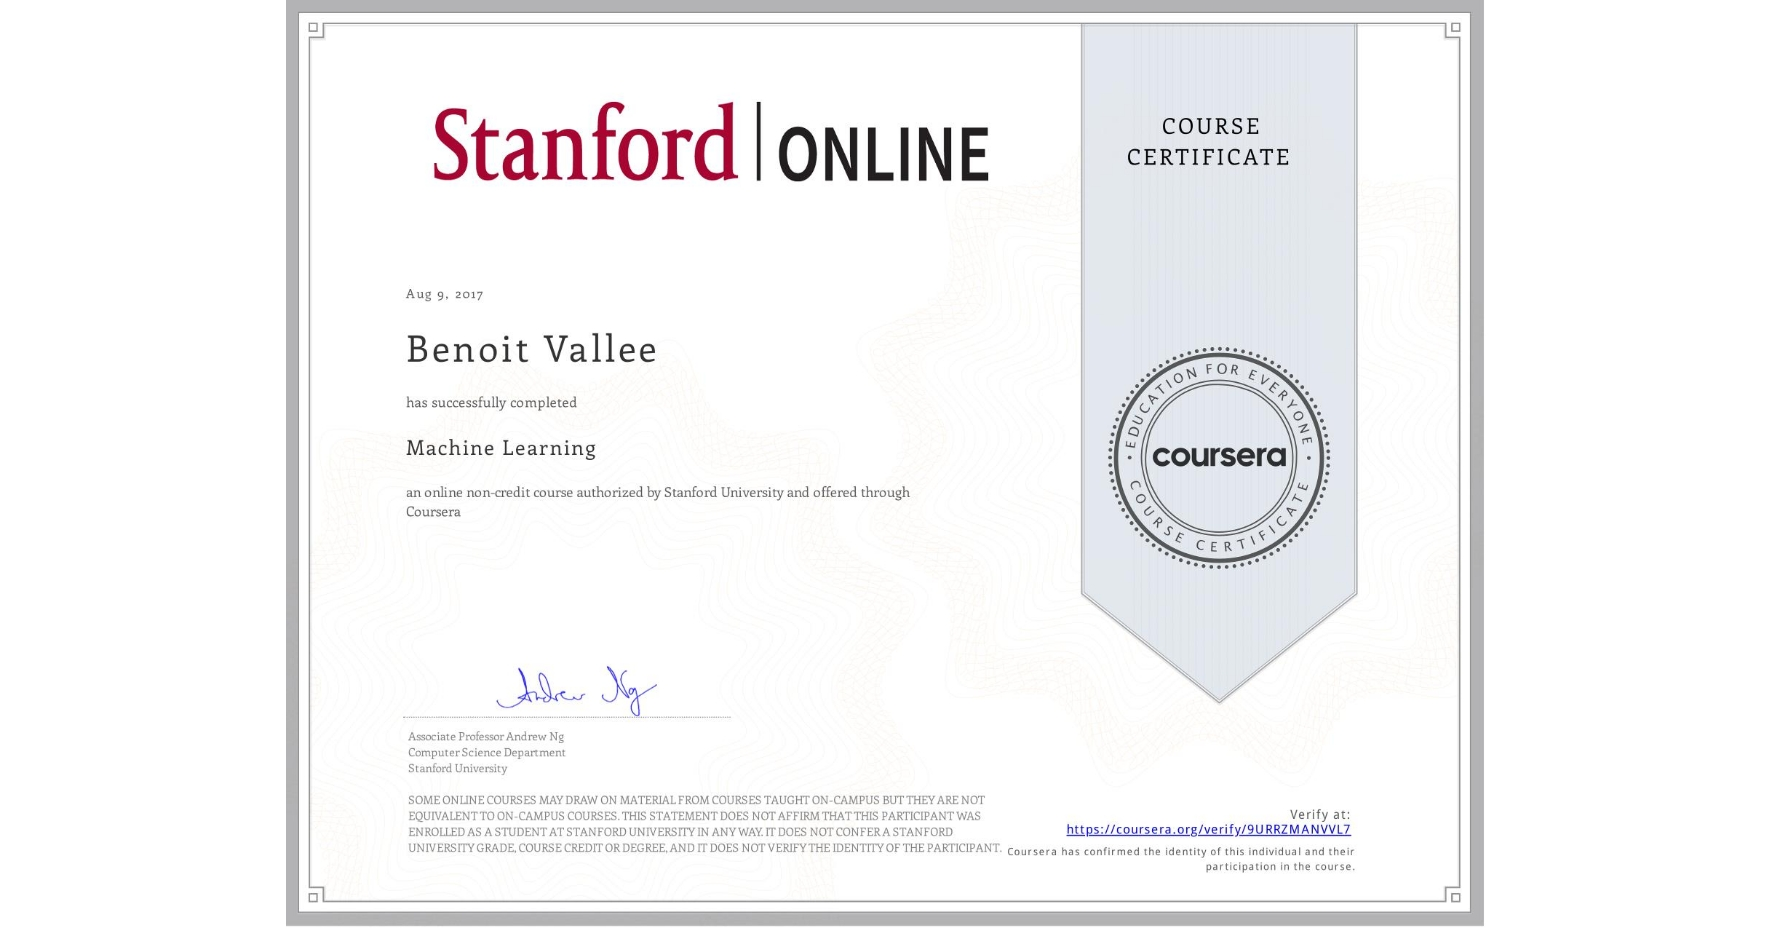 View certificate for Benoit Vallee, Machine Learning, an online non-credit course authorized by Stanford University and offered through Coursera